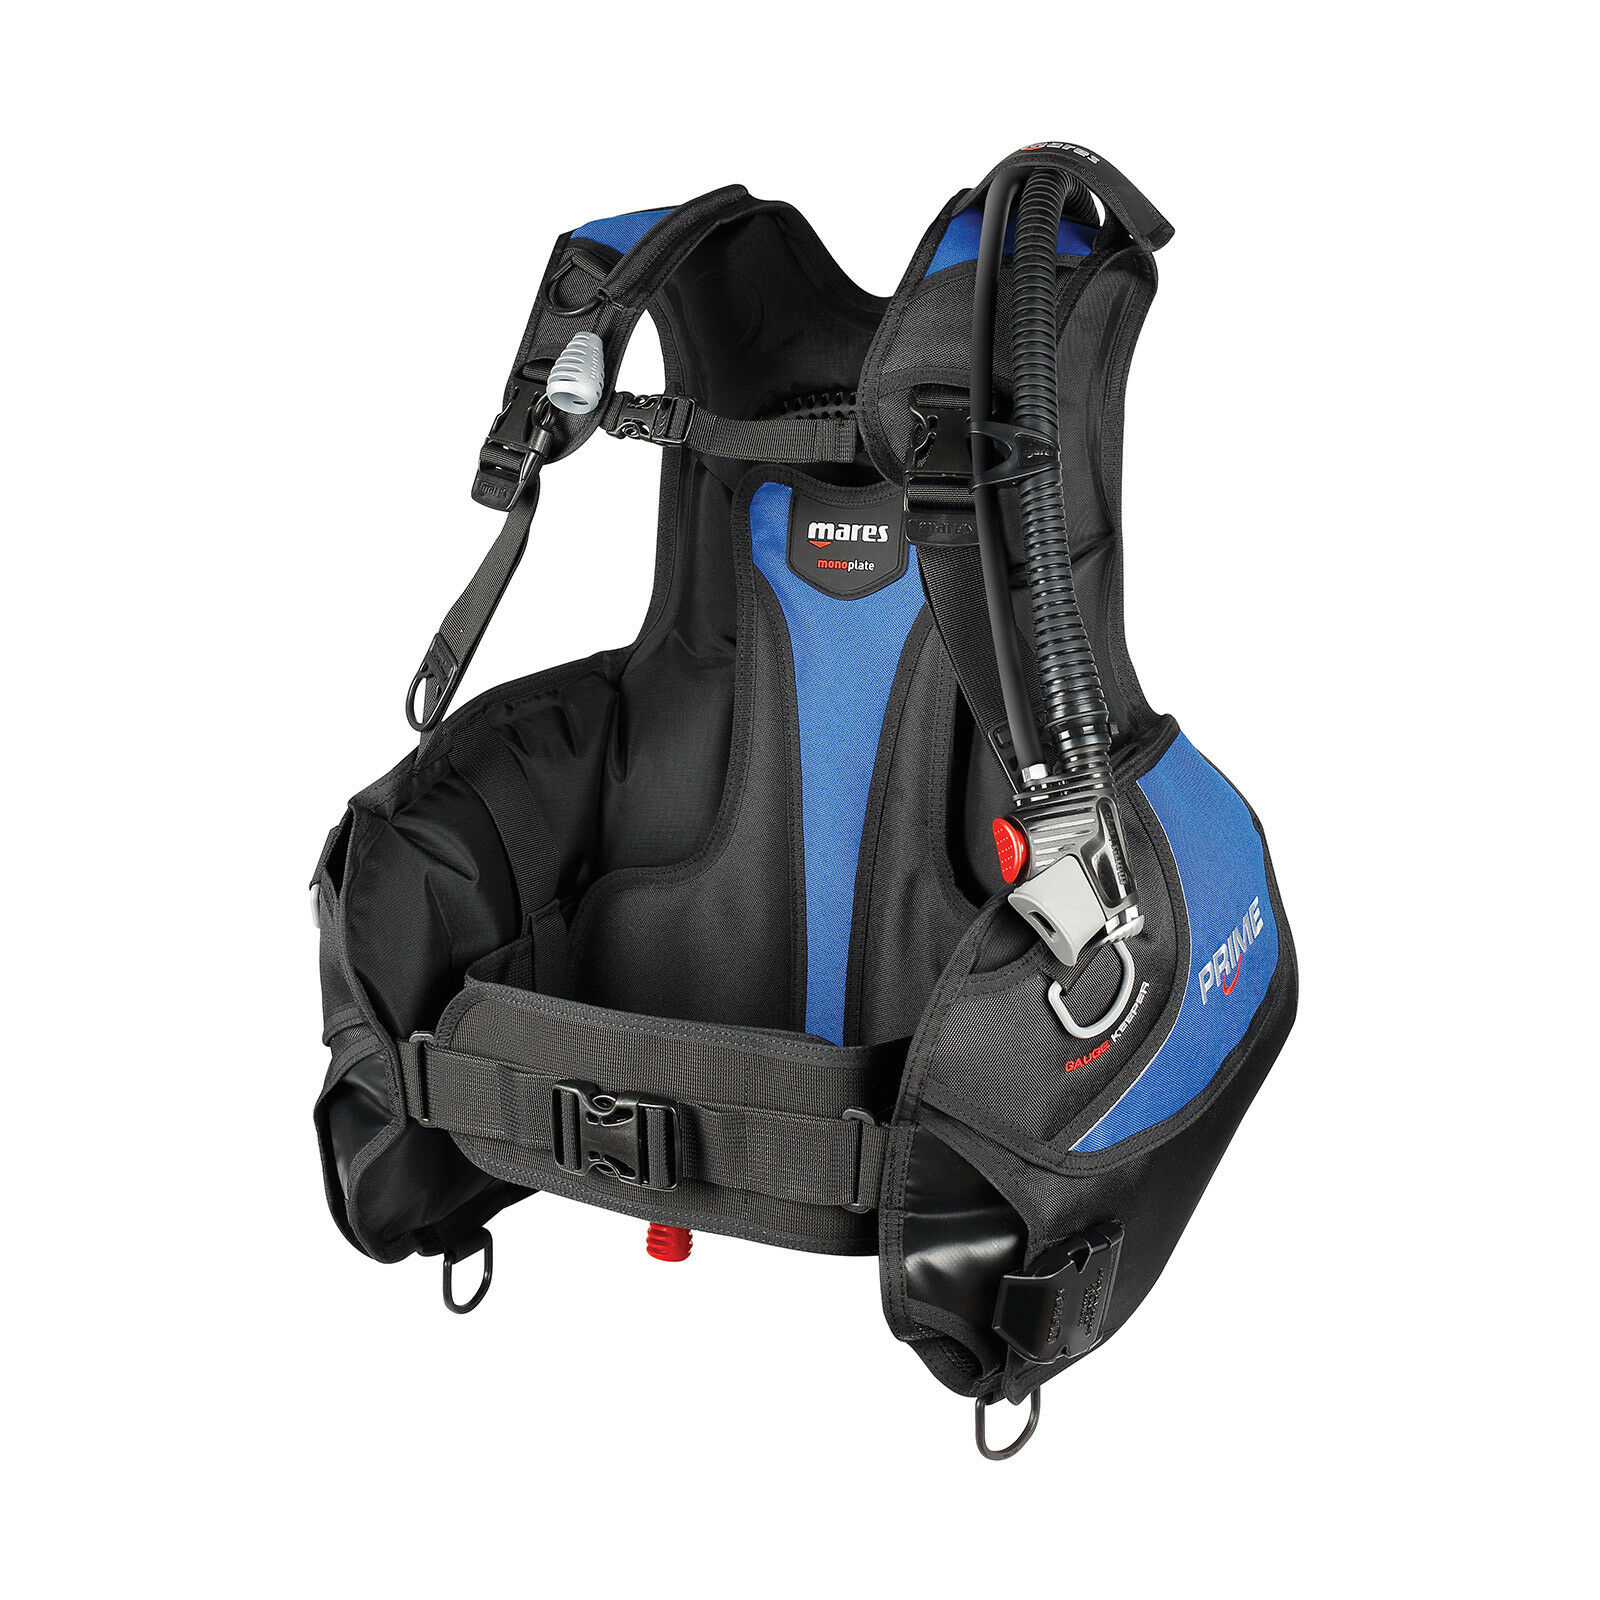 Mares Prime Upgradeable Dive Scuba Diving Men's BCD Buoyancy Compensator LG